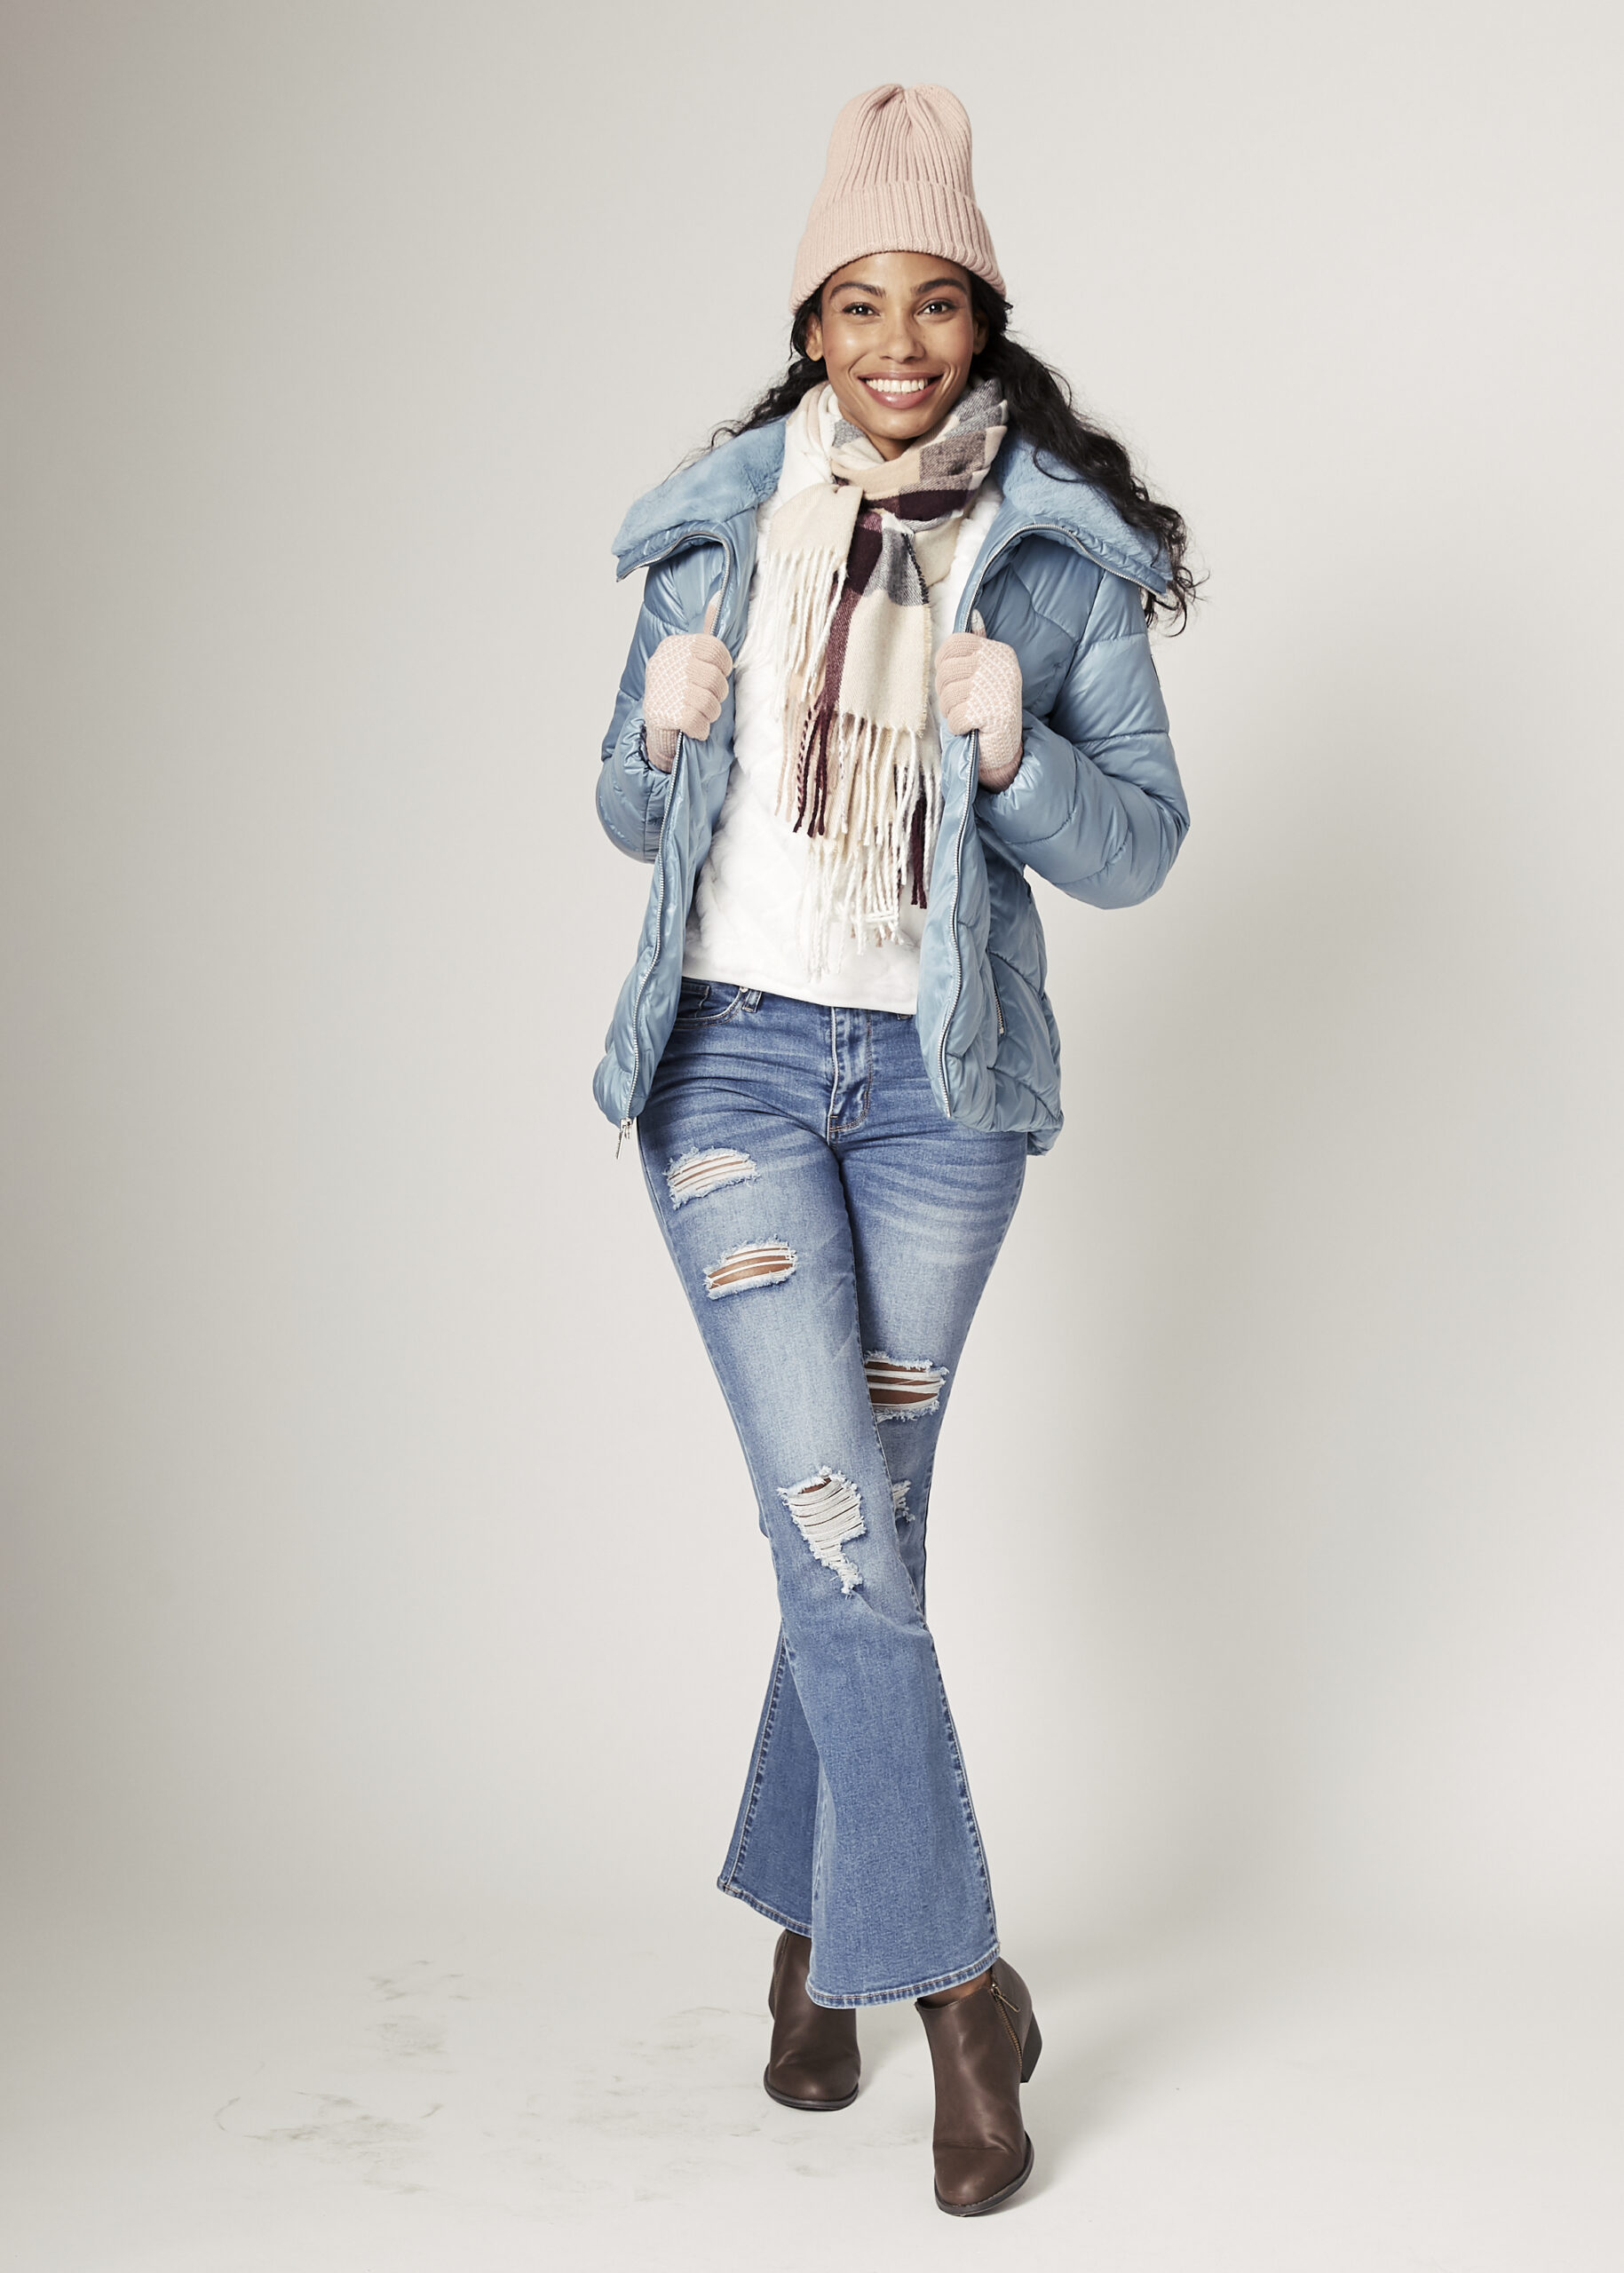 ALL COATS: BRIGHTER, NEWER COLORS